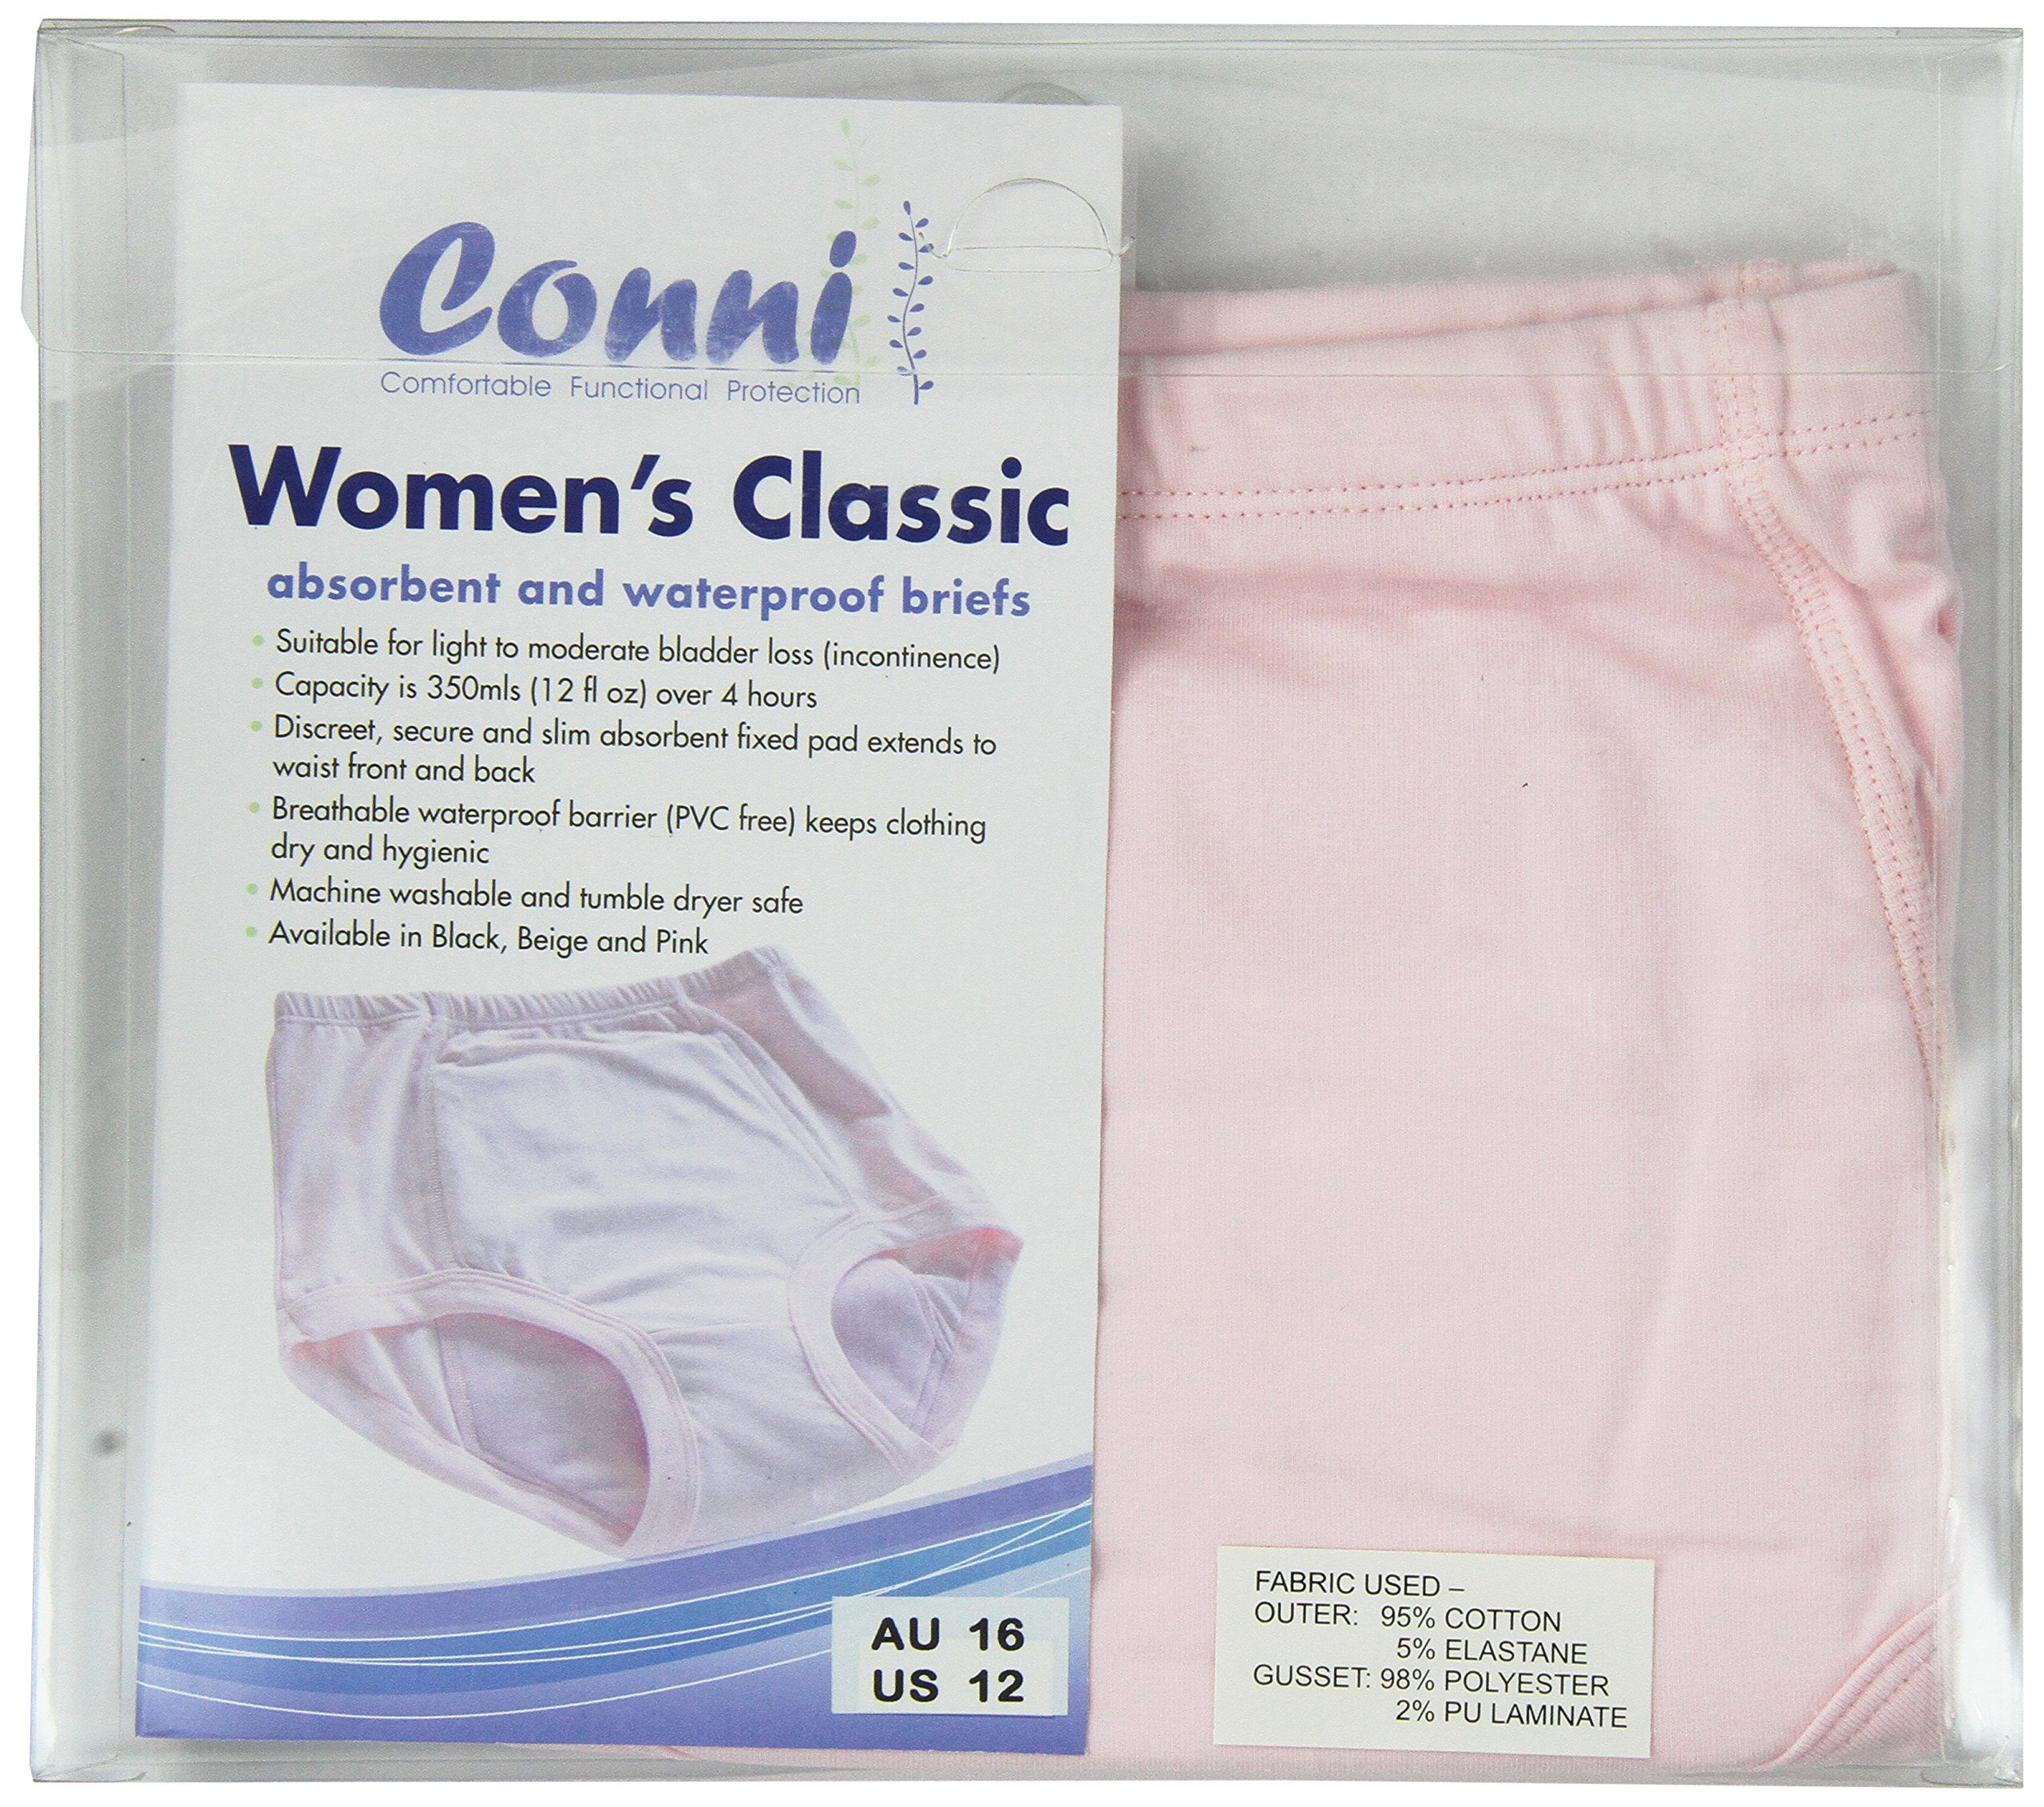 Conni Women's Classic Undergarments, Pink, Size 12 Extra Large, 5 Ounce (Pack of 20)